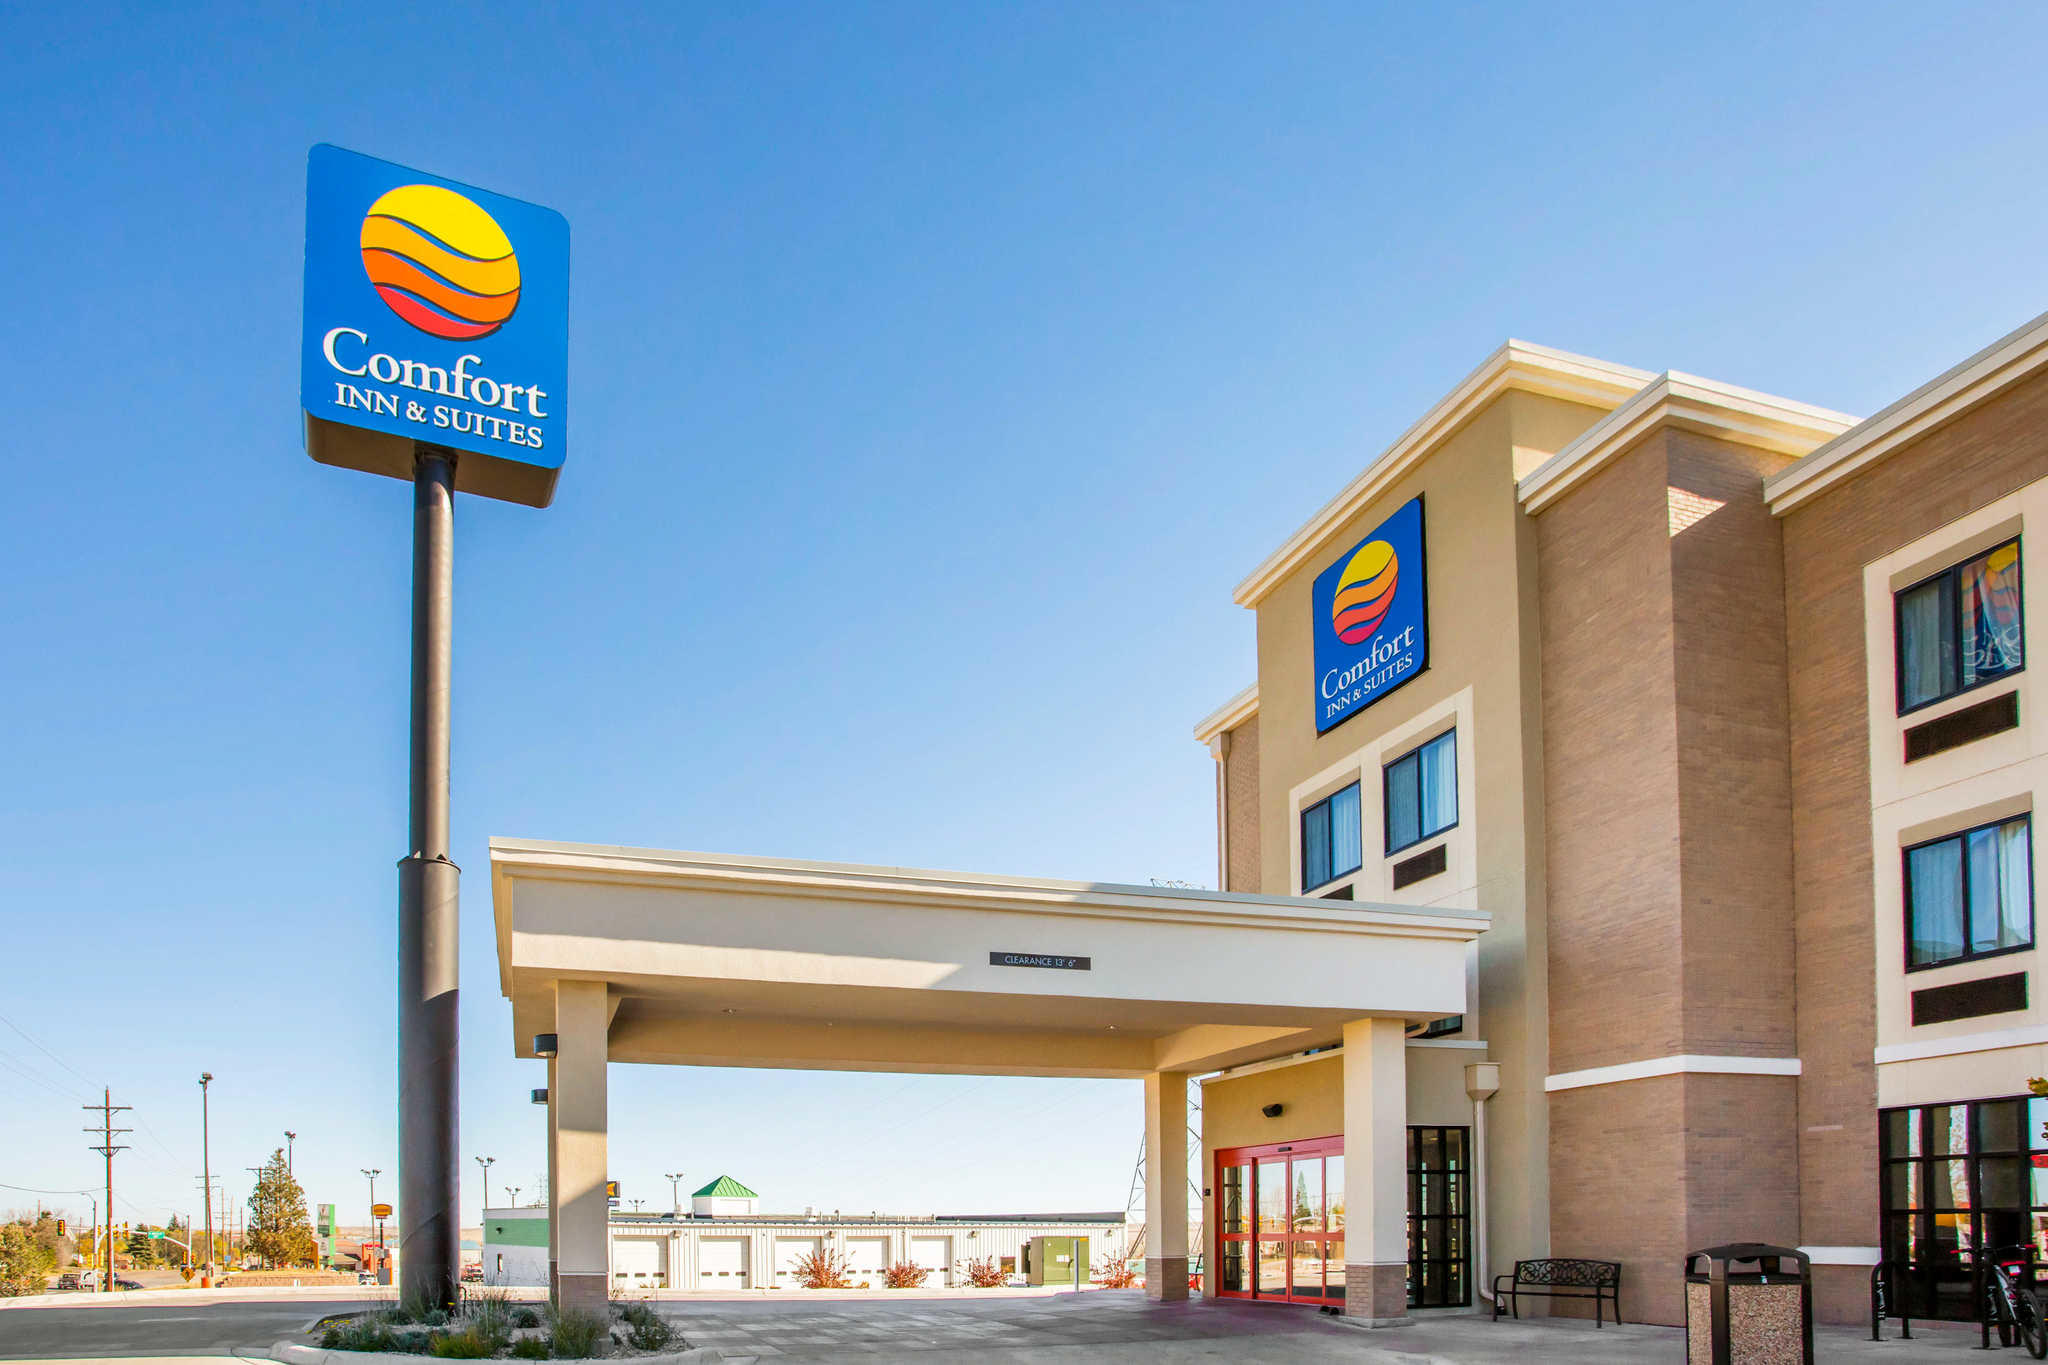 Comfort Inn Amp Suites Cheyenne Wy Business Page